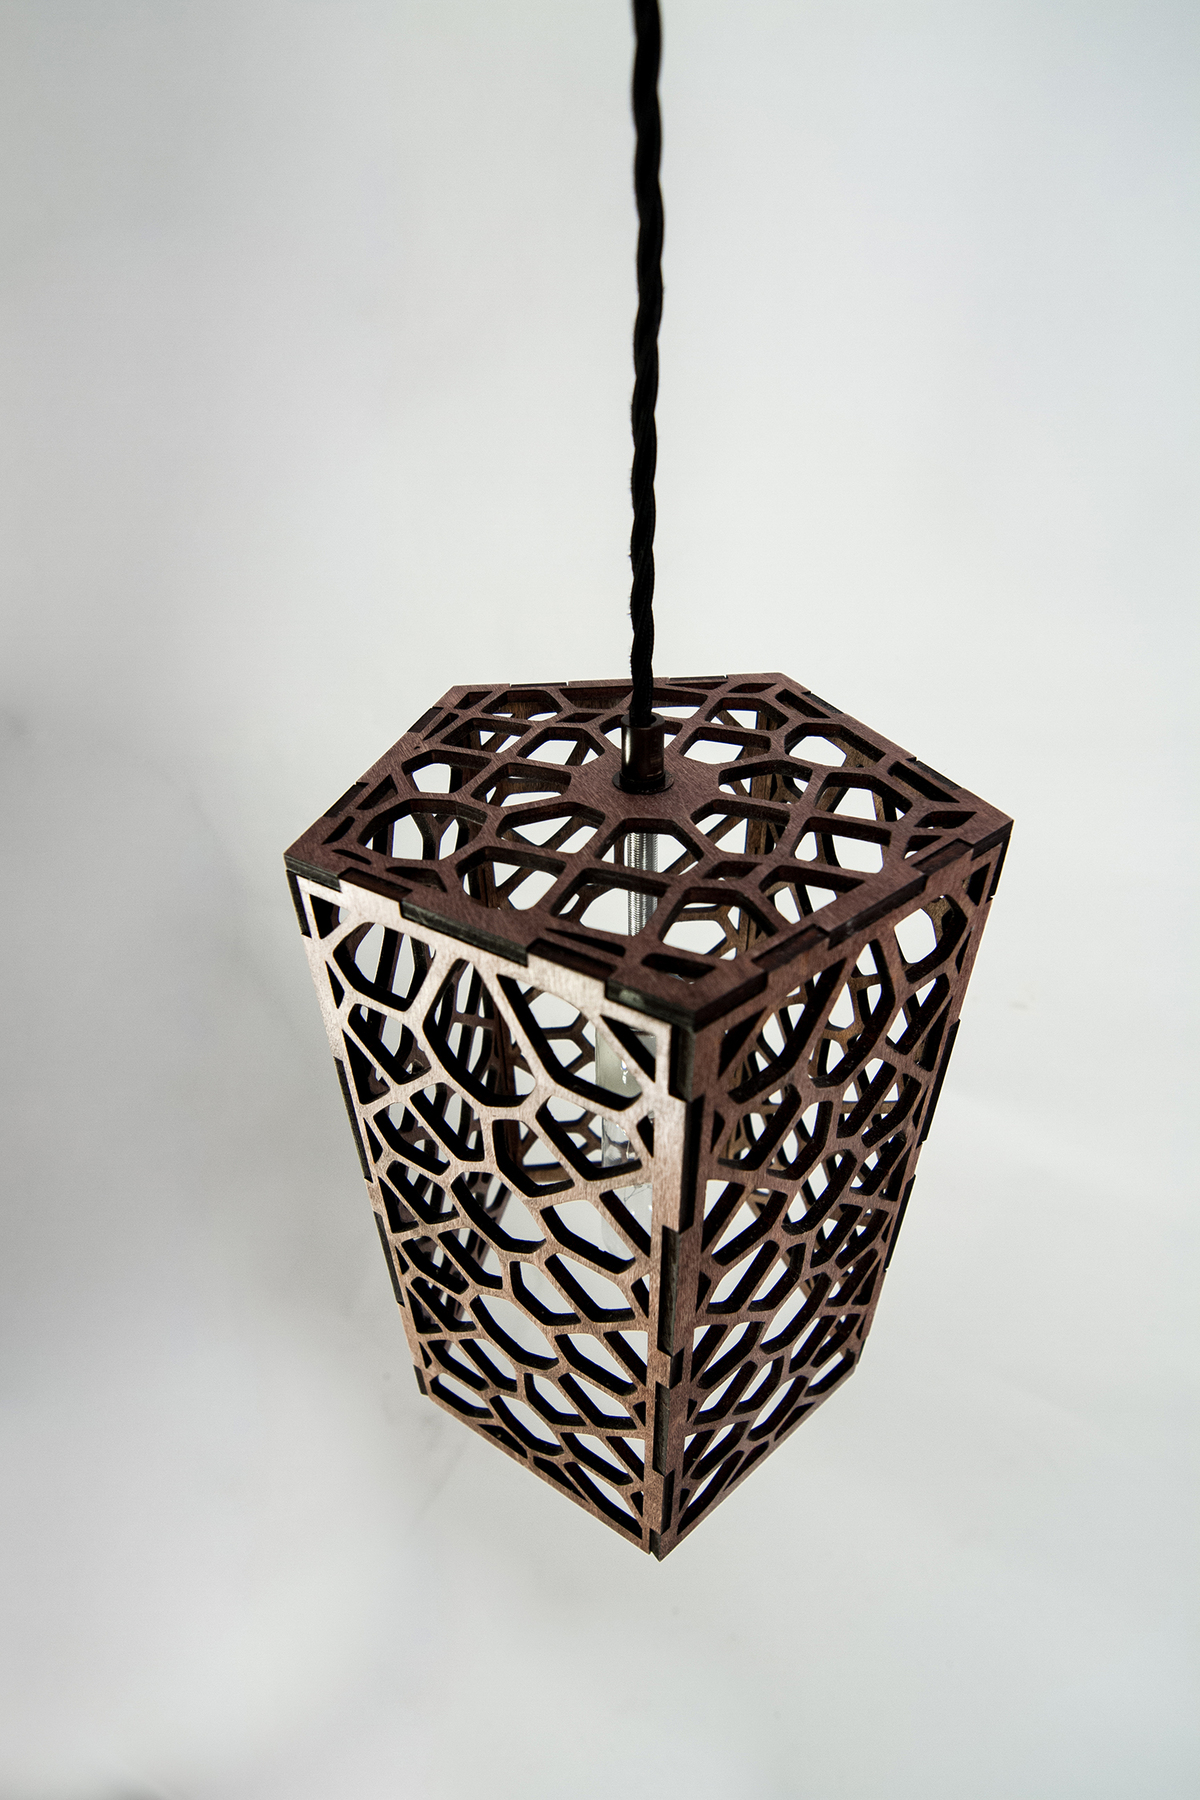 Laser Cut Lighting Project Smith Factory Llc Archinect